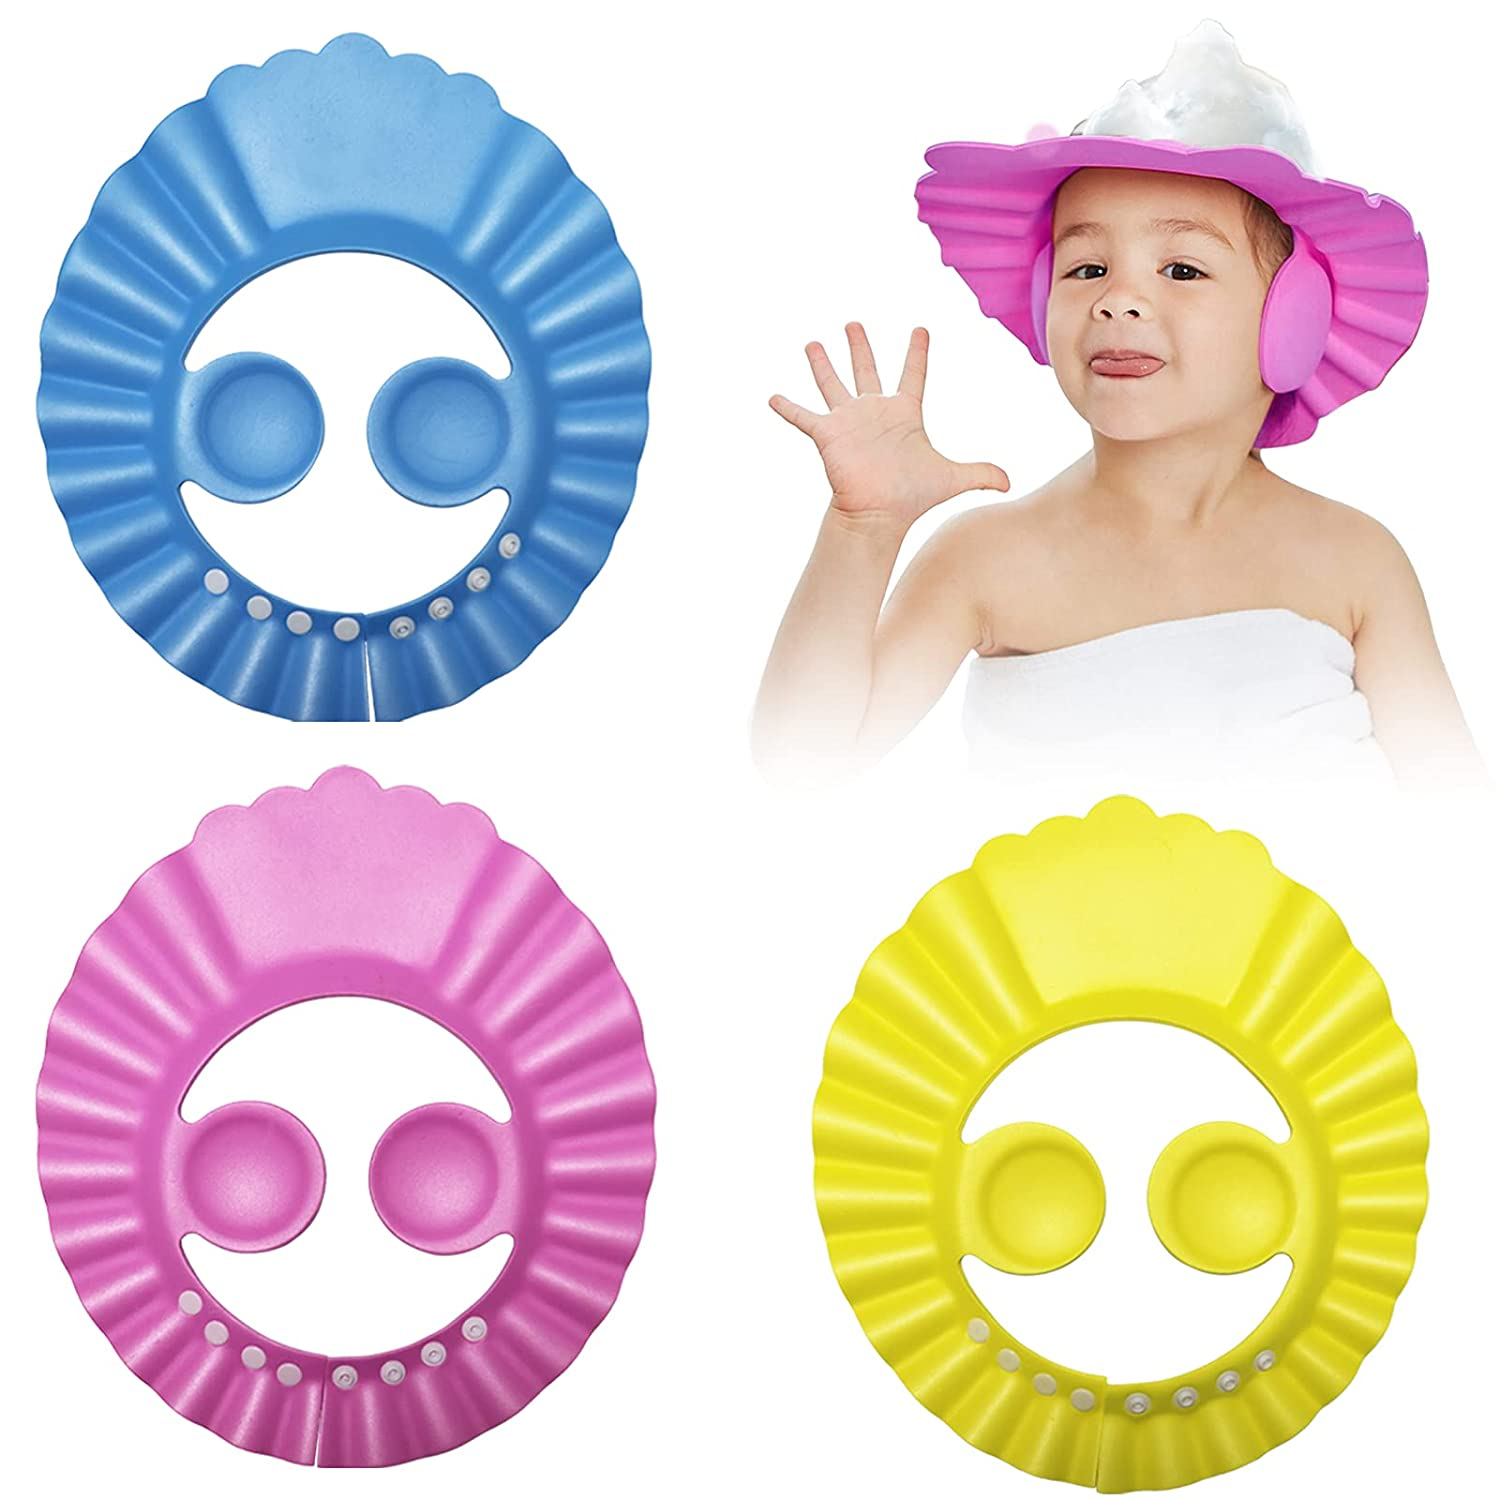 Fudragtn Baby Shower Cap, 3 pcs 3 Colors Adjustable Bath Shampoo Cap, Children's Shampoo Foam Protective Cover, can Prevent Water and Foam from Entering The Baby's Ears and Eyes